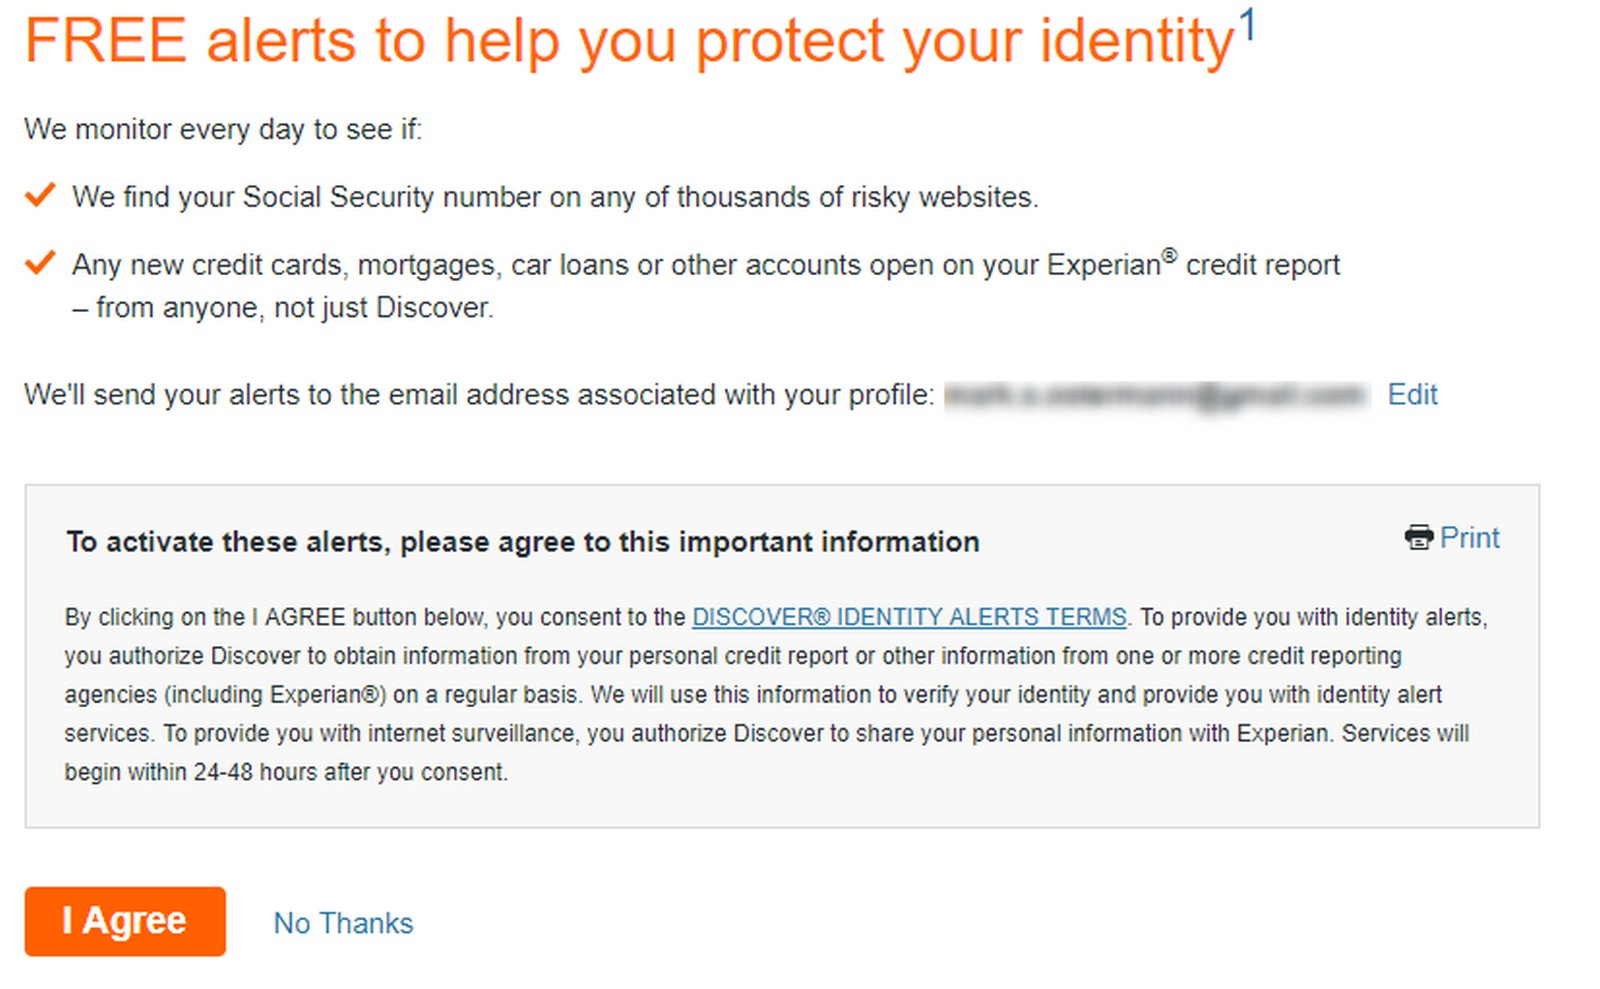 My Experience Enrolling in Discover Alerts